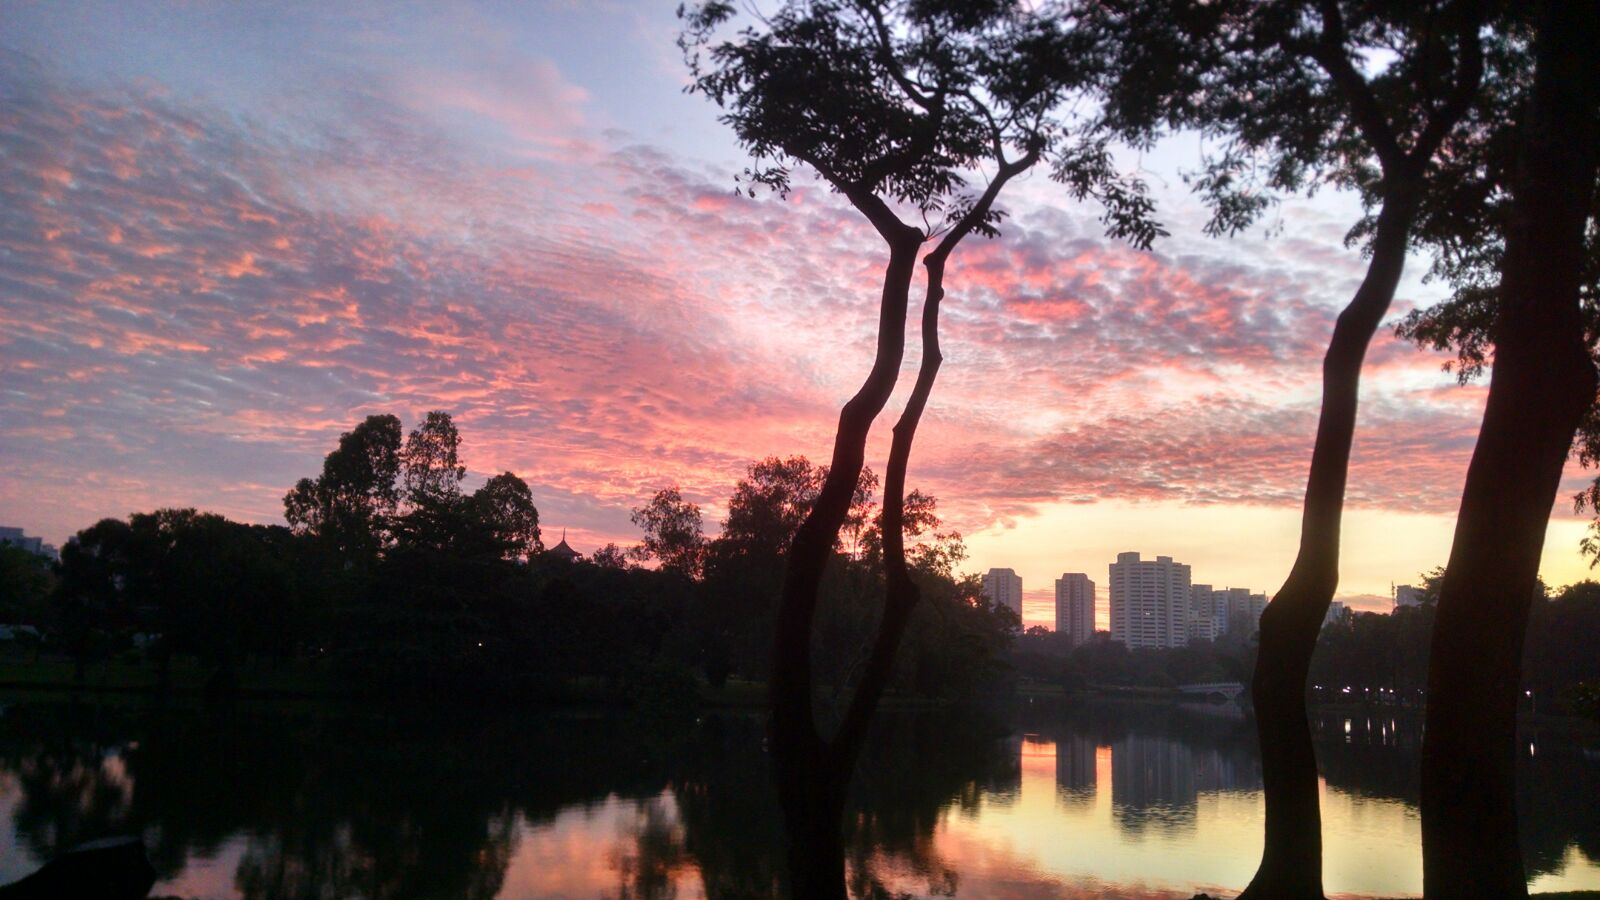 Sunrise by the Chinese Garden, Singapore